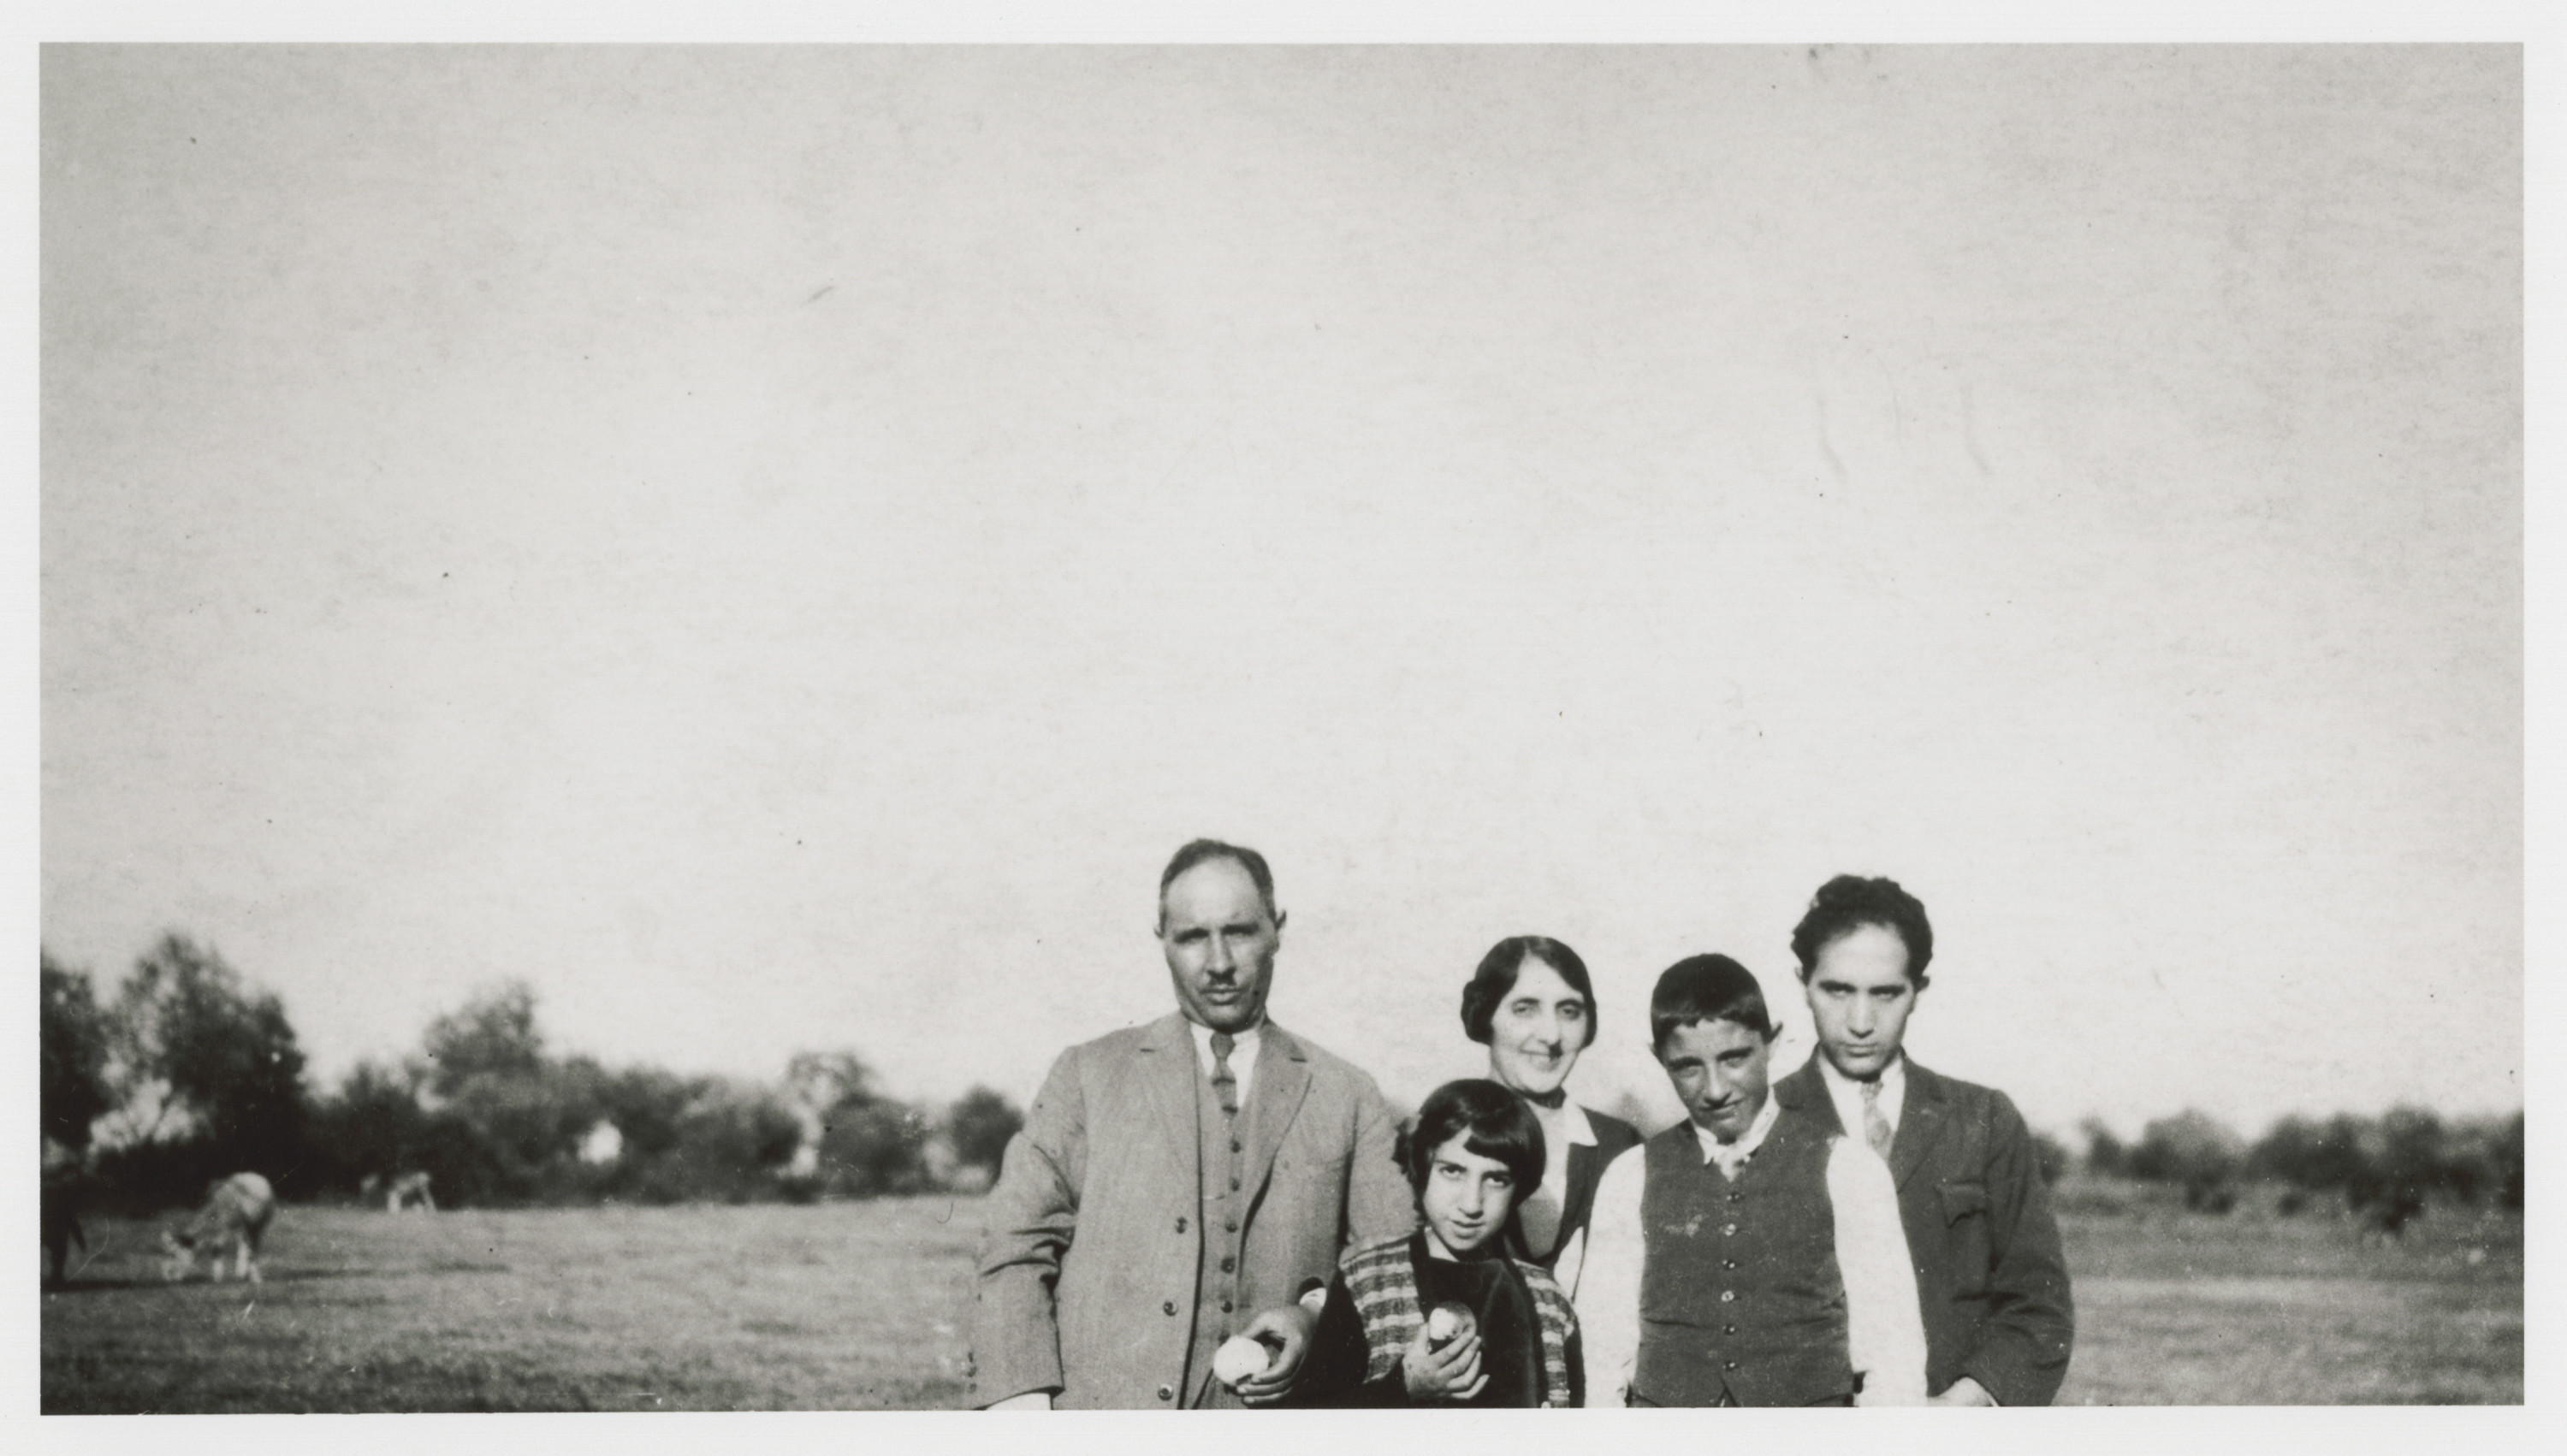 A Jewish family near Monastir (Bitola).  Pictured are (front, left to right): Rachel and Jacques Nahmias, and (back, left to right)  Avram Nahmias, Mrs. Chanah Mayo, and Isaac Nahmias.